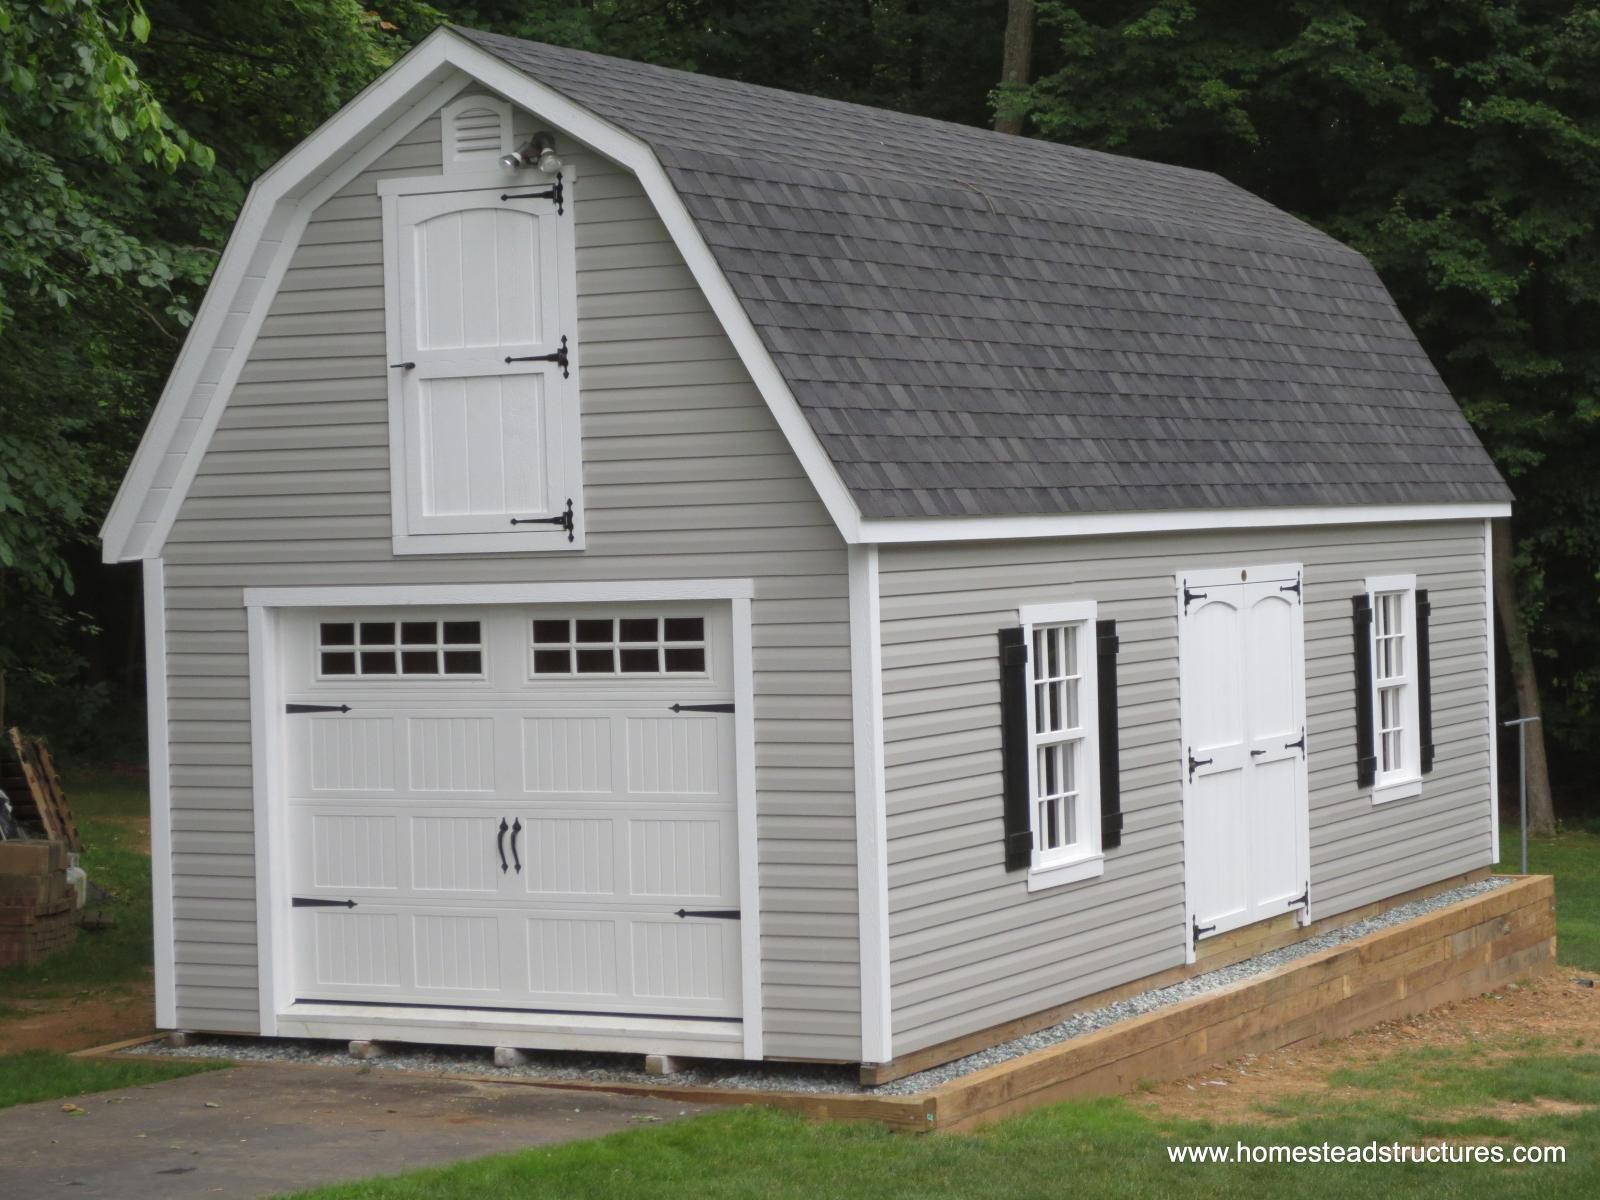 ^ 1000+ images about Storage Shed on Pinterest